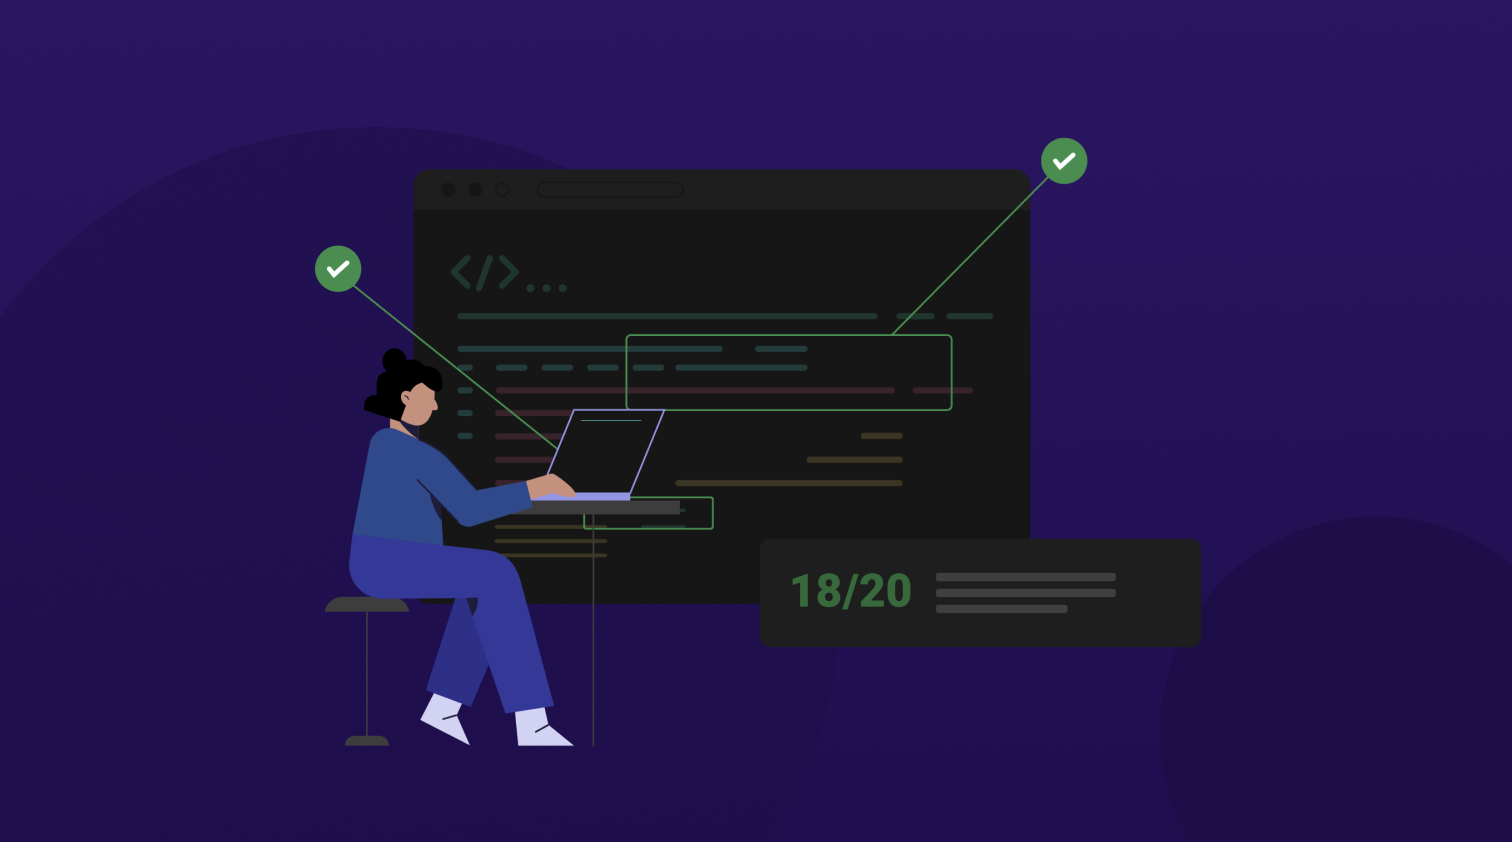 Introducing Deep Code Analysis for Performance Assessments